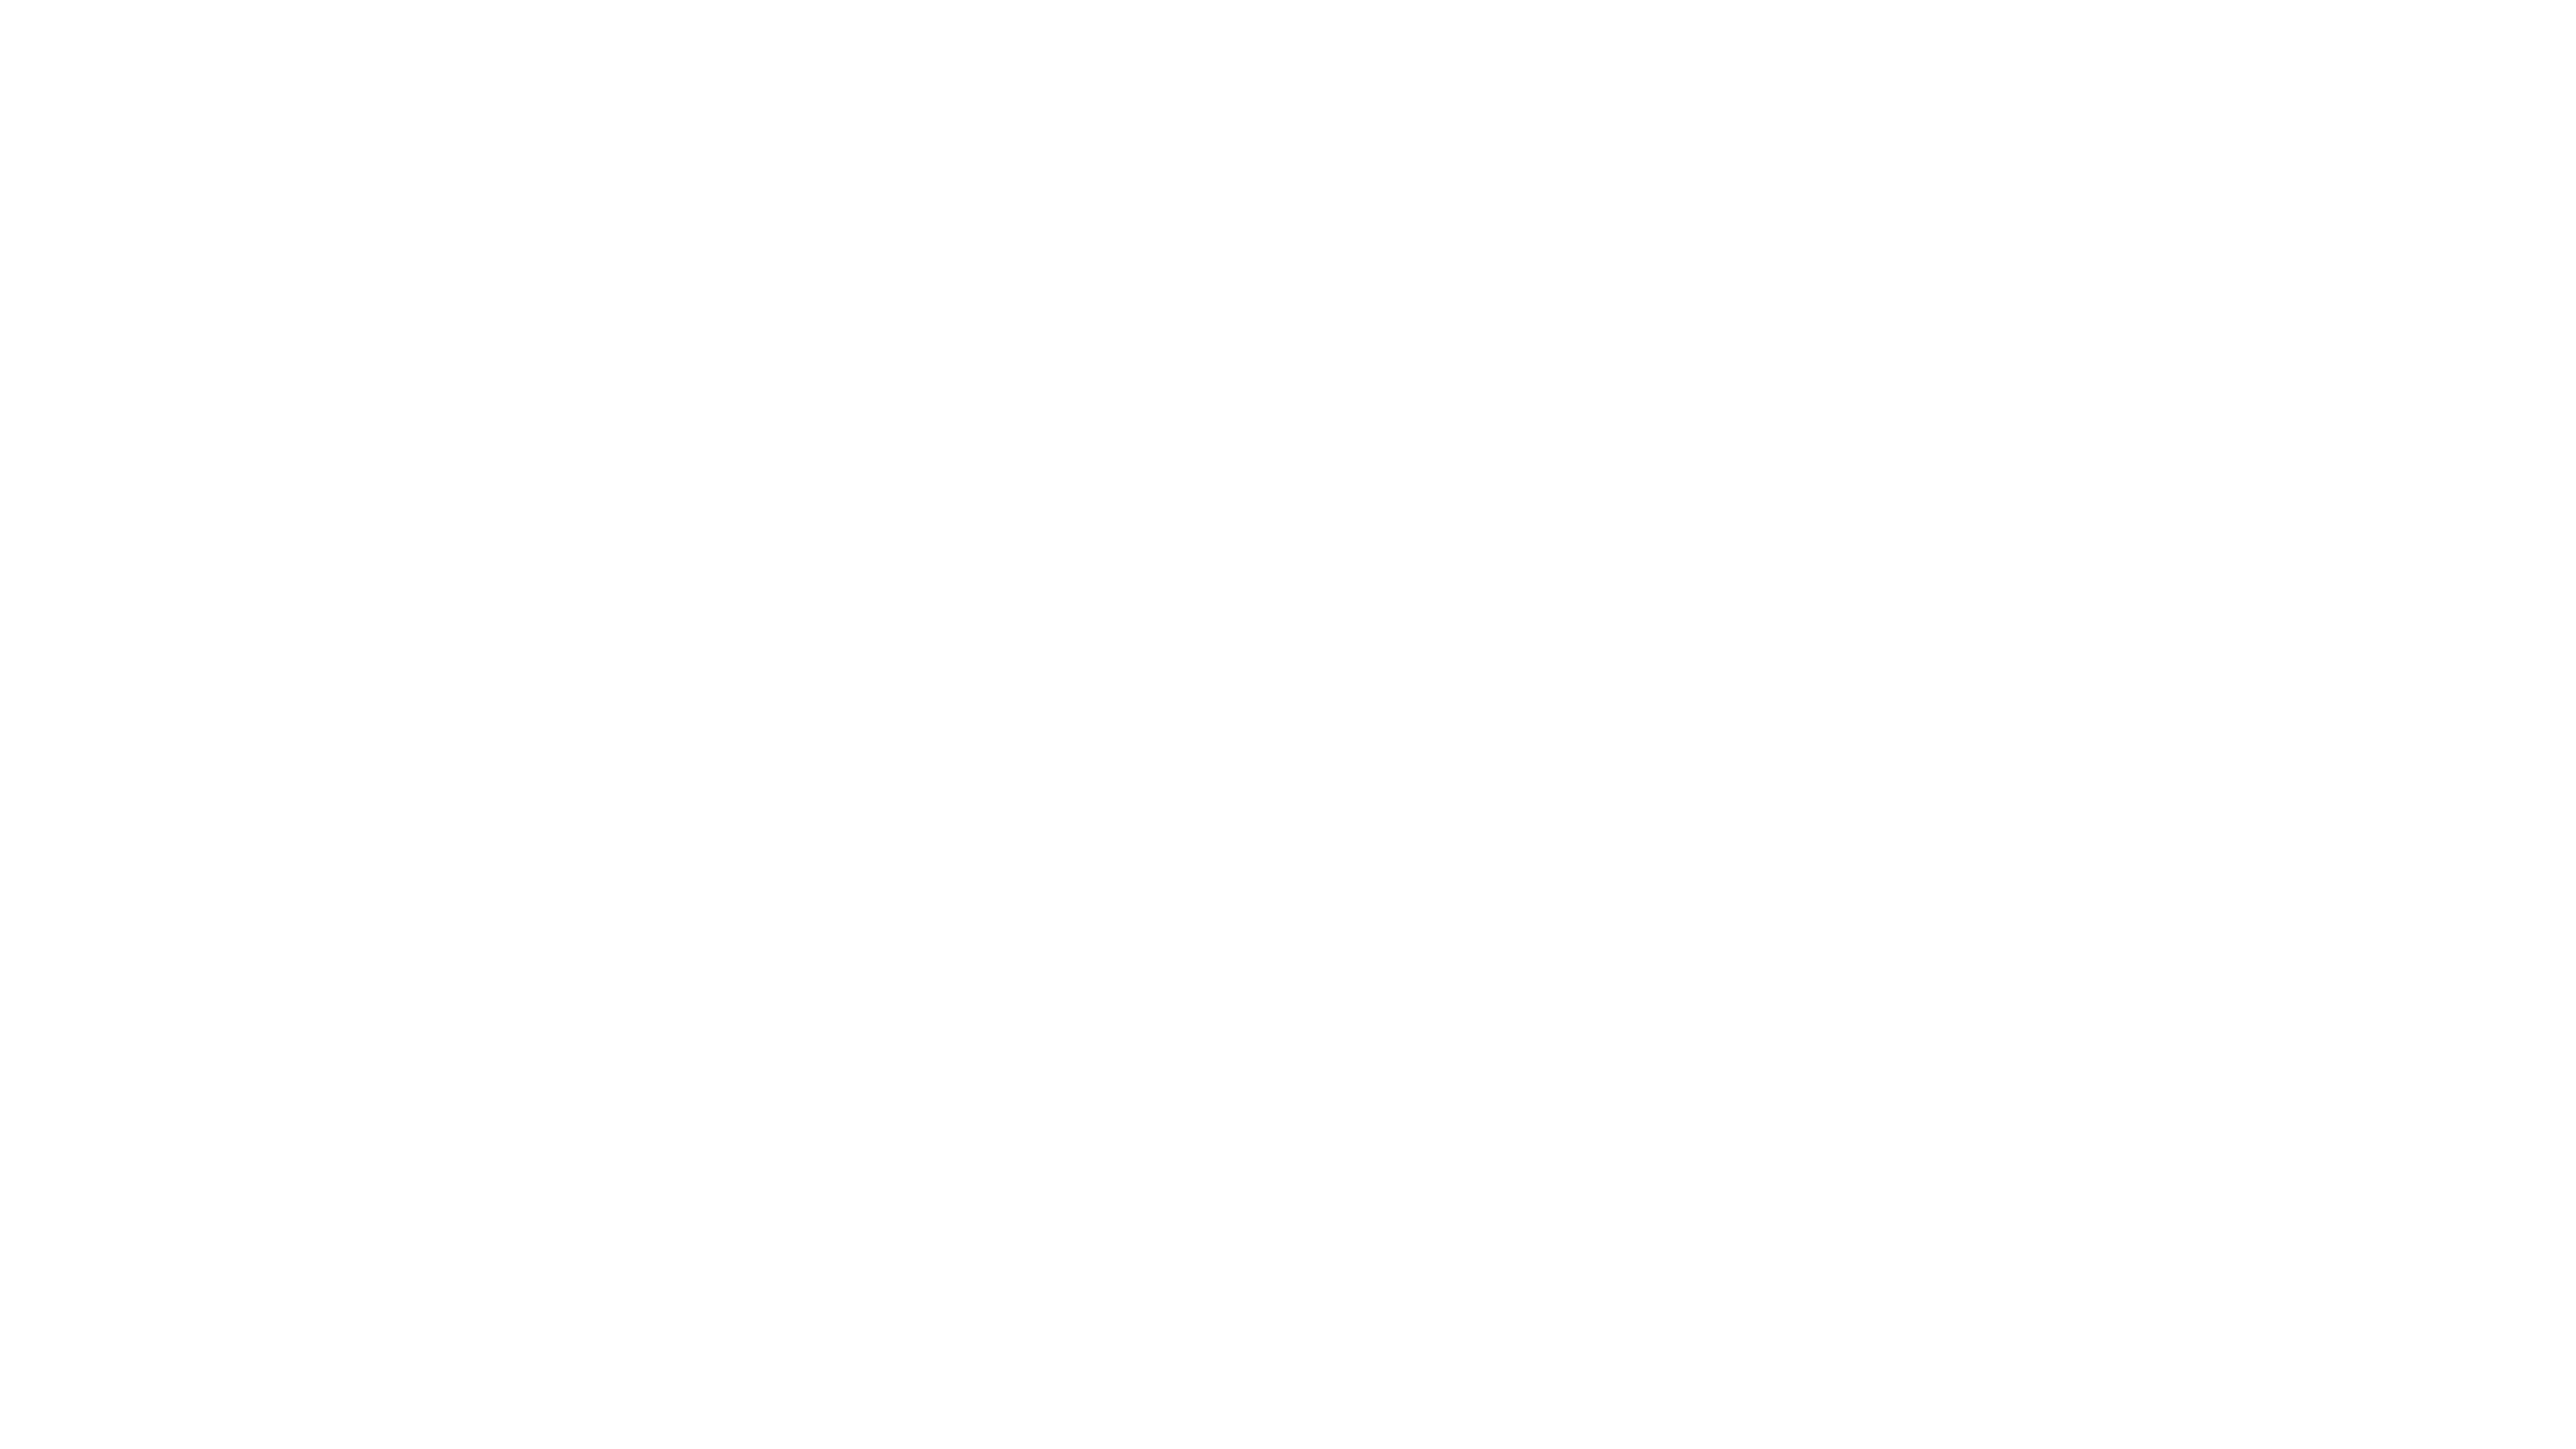 """""""Heart & Soul"""" text graphic in cursive"""